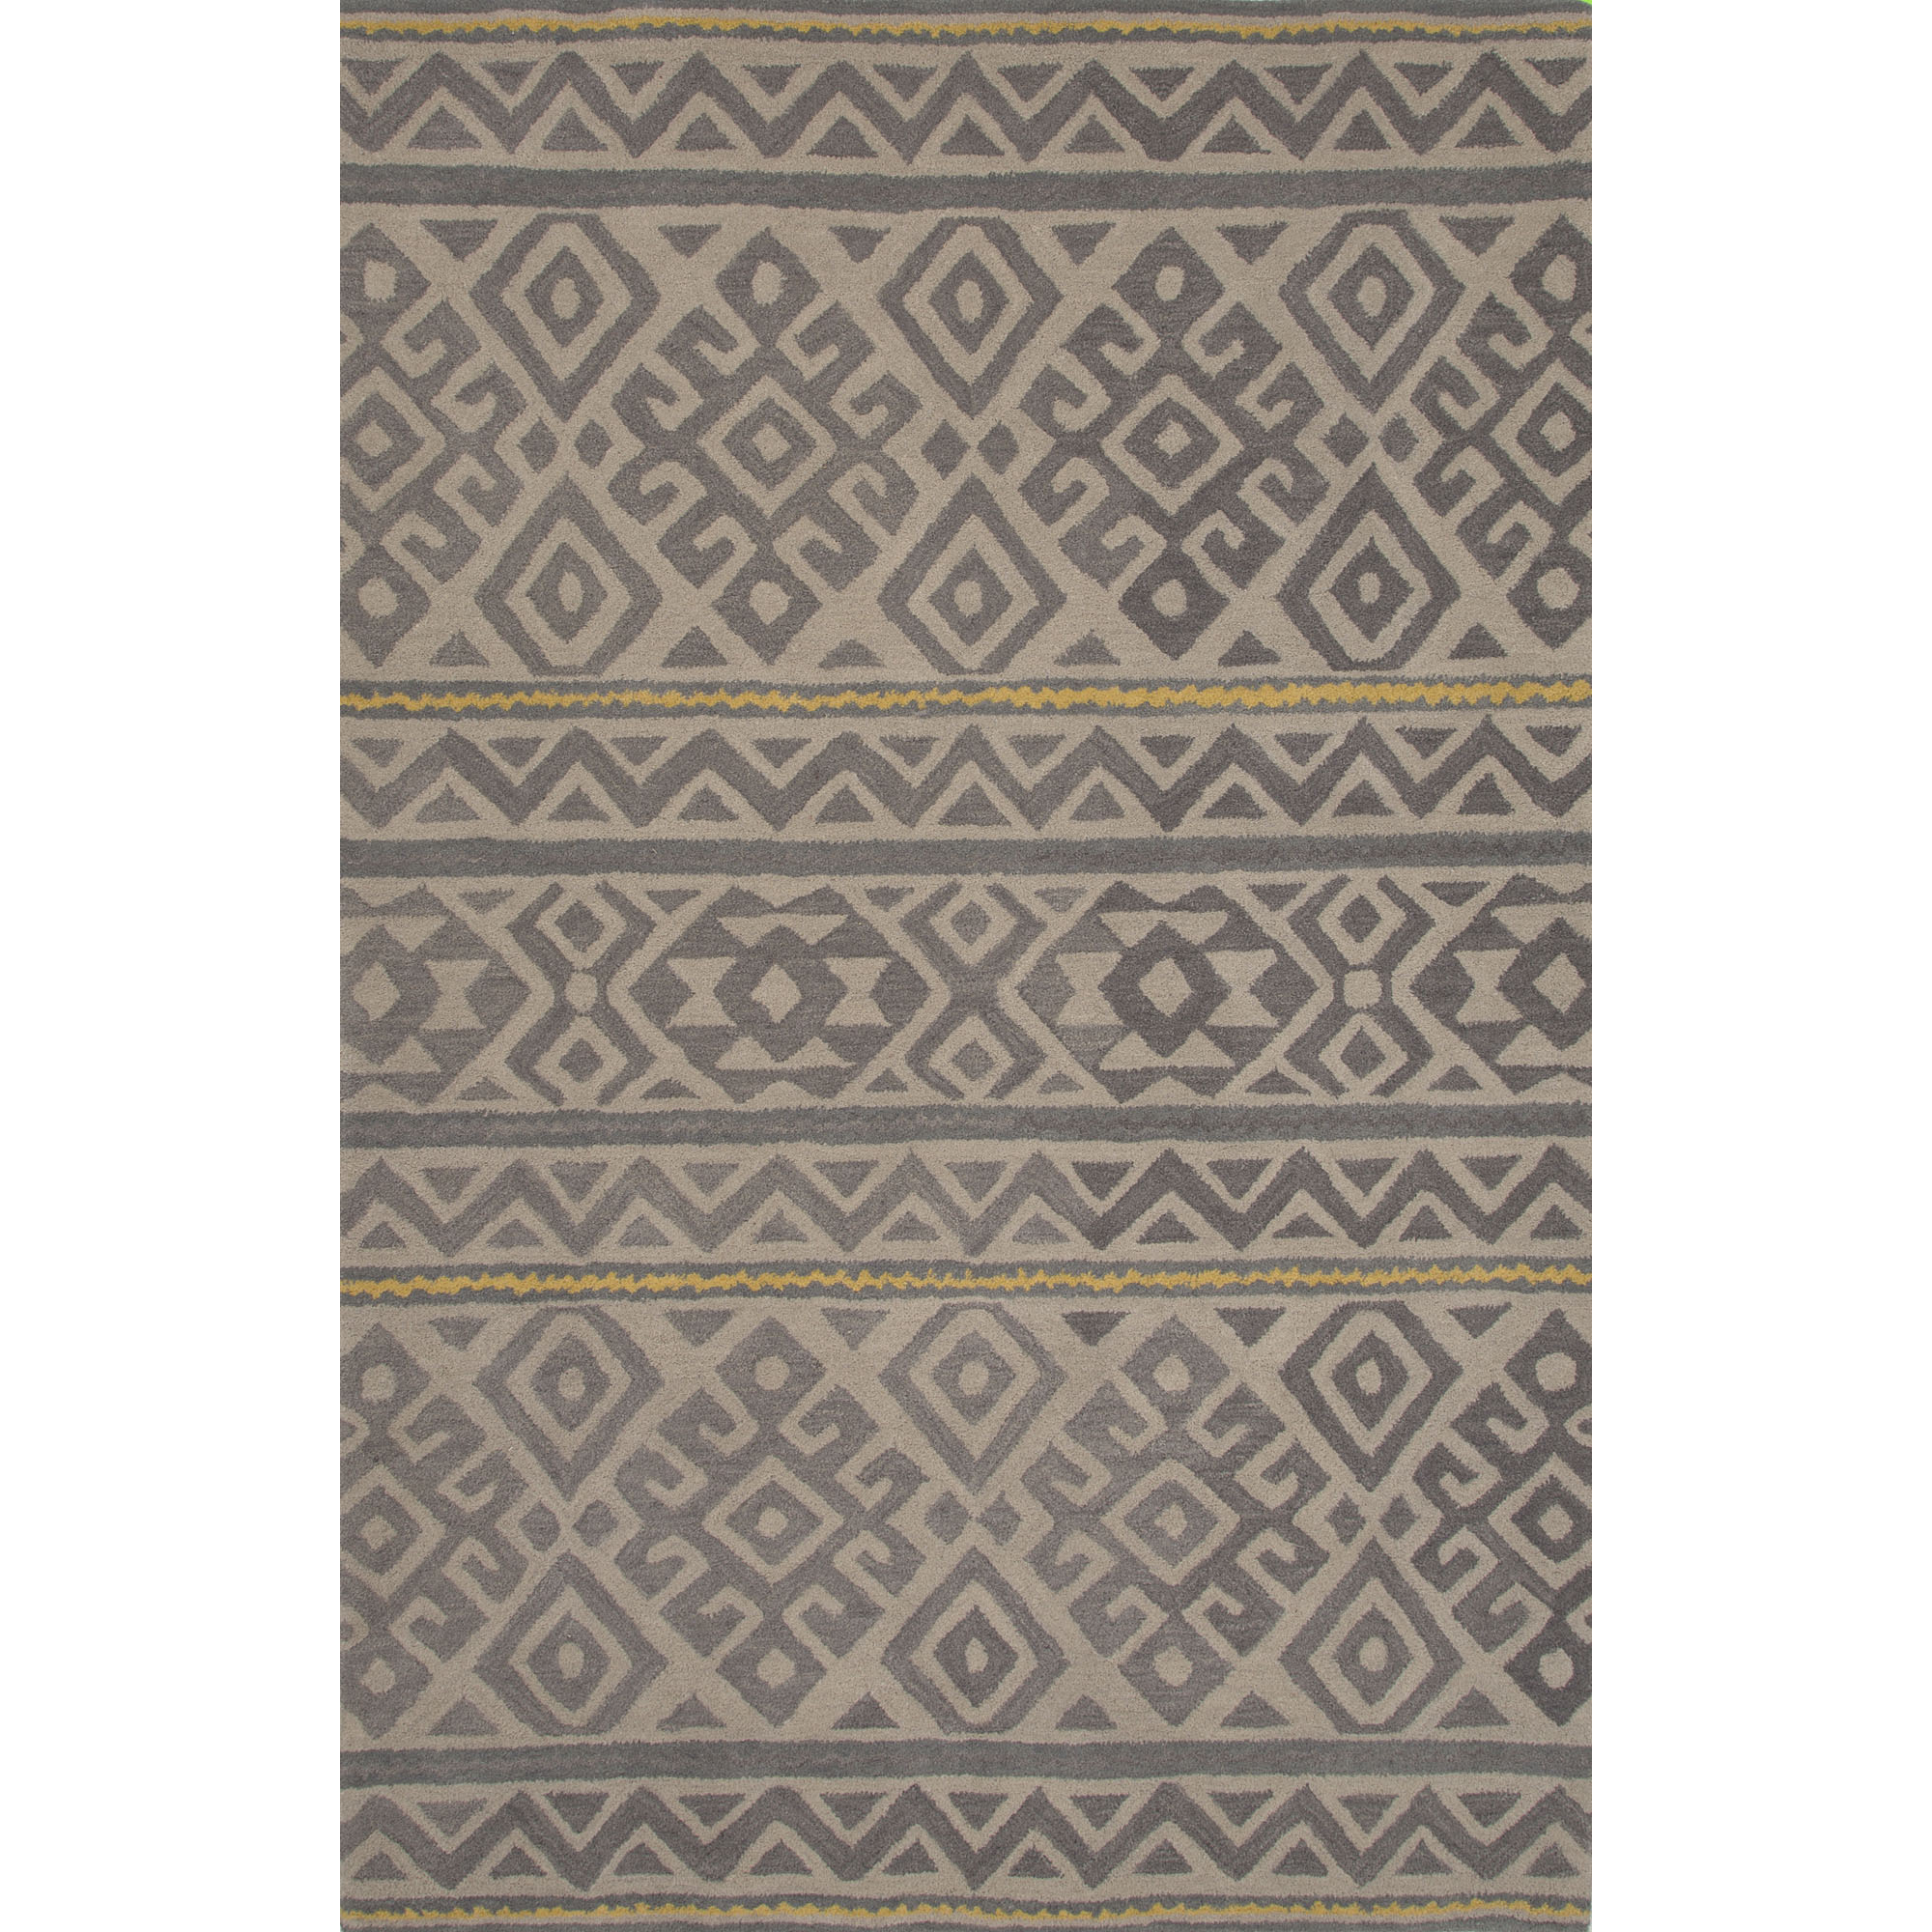 JAIPUR Rugs Traditions Made Modern Tufted 5 x 8 Rug - Item Number: RUG121388